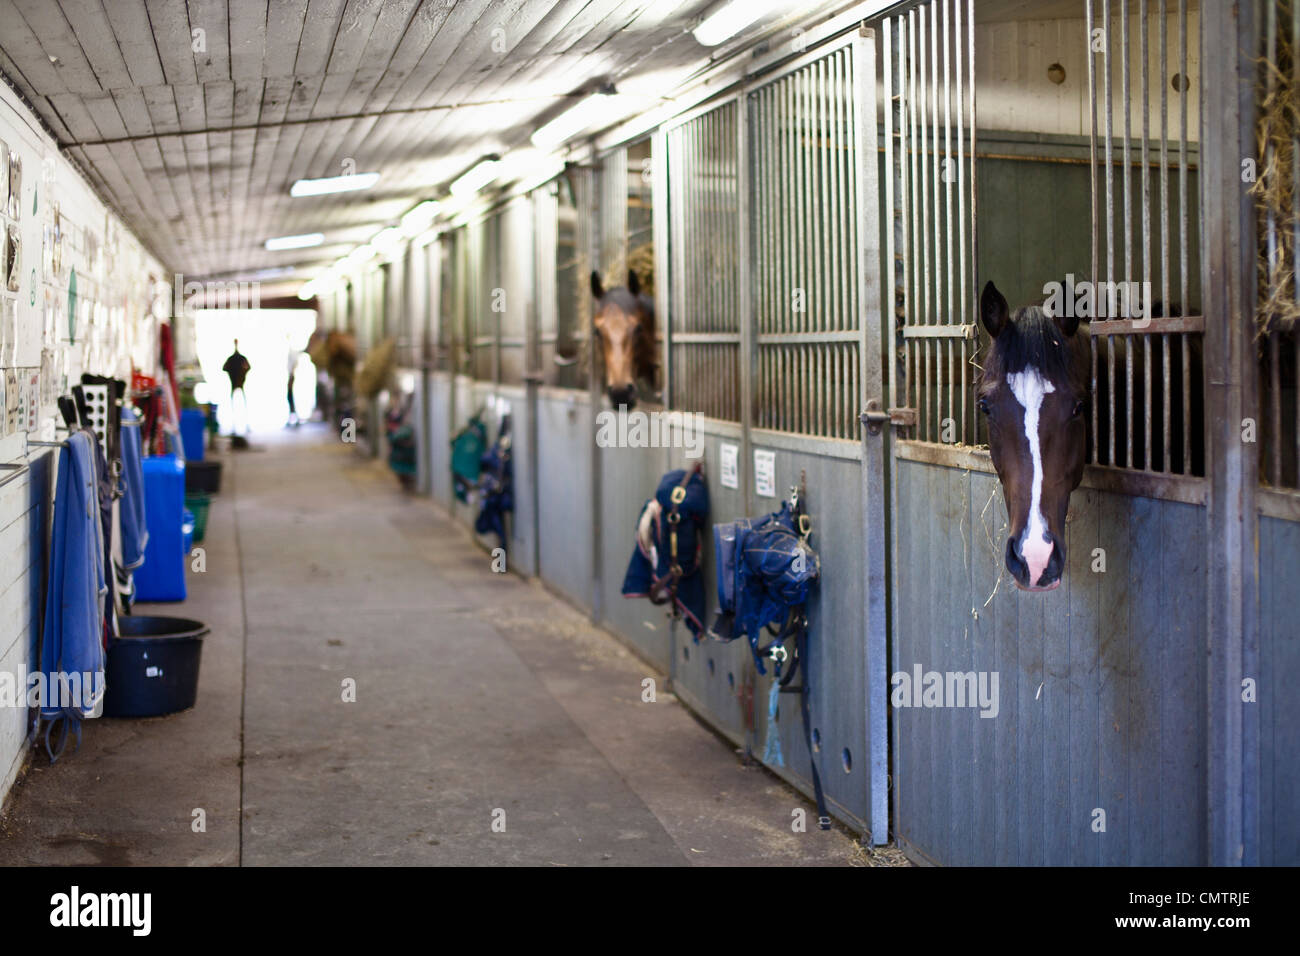 Stables with horses - Stock Image